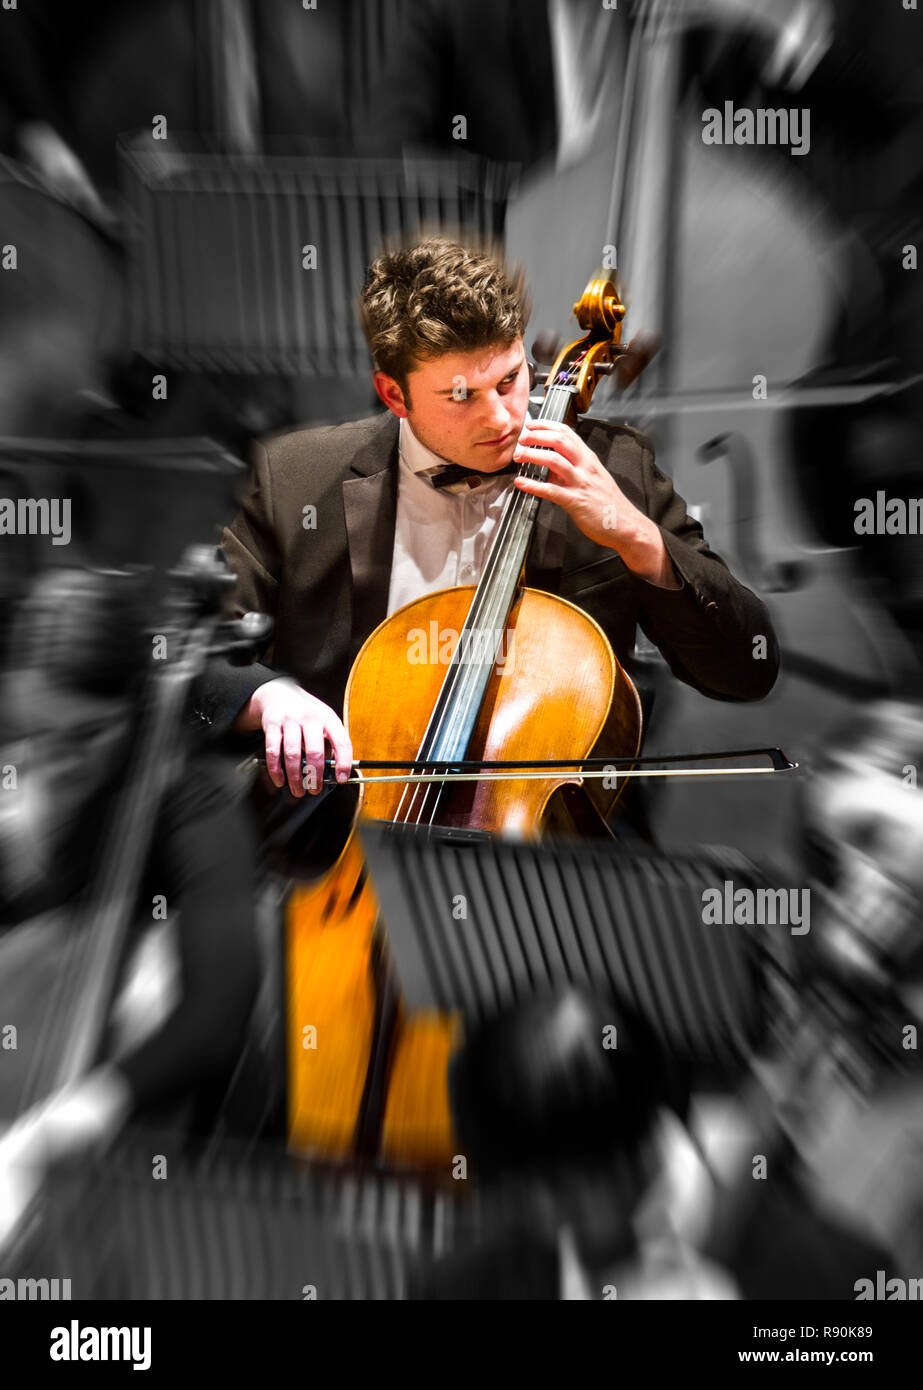 Stylised image of a young Cellist playing his cello - Stock Image